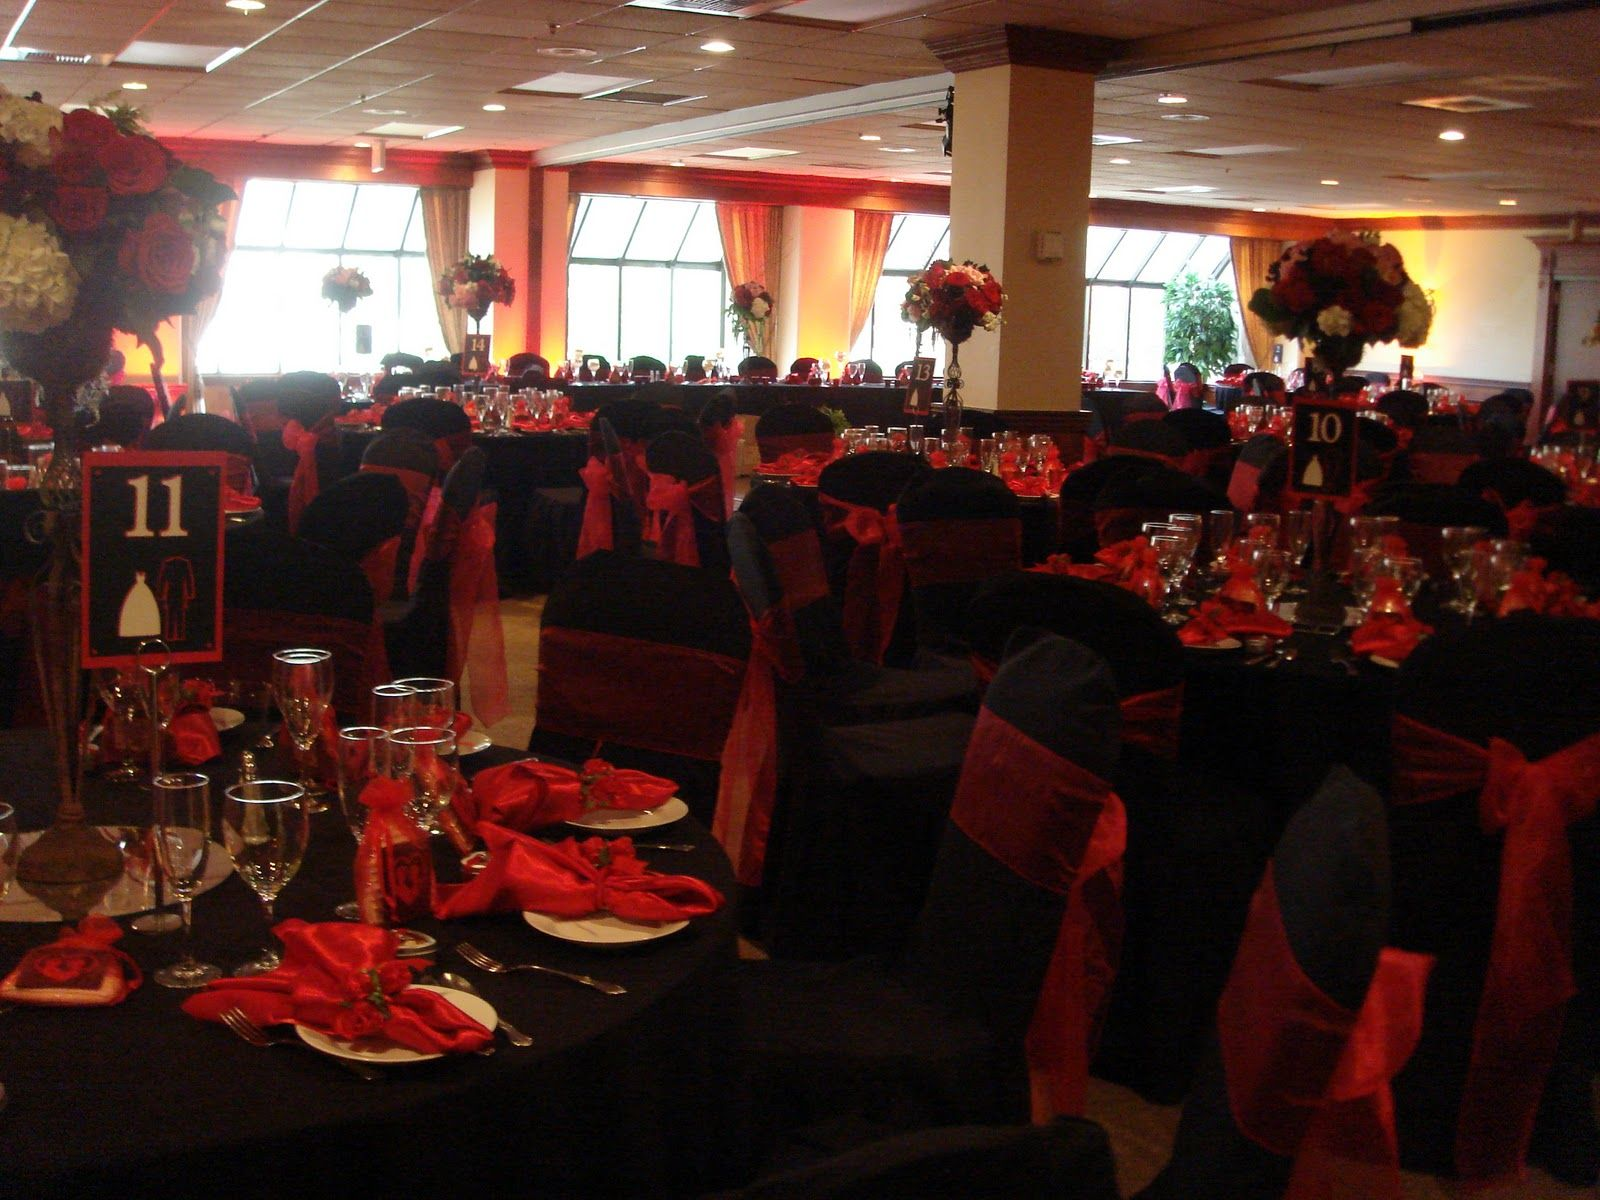 Unique Red And Black Wedding Reception Ideas With Chair Covers Napkins In Black And Chili